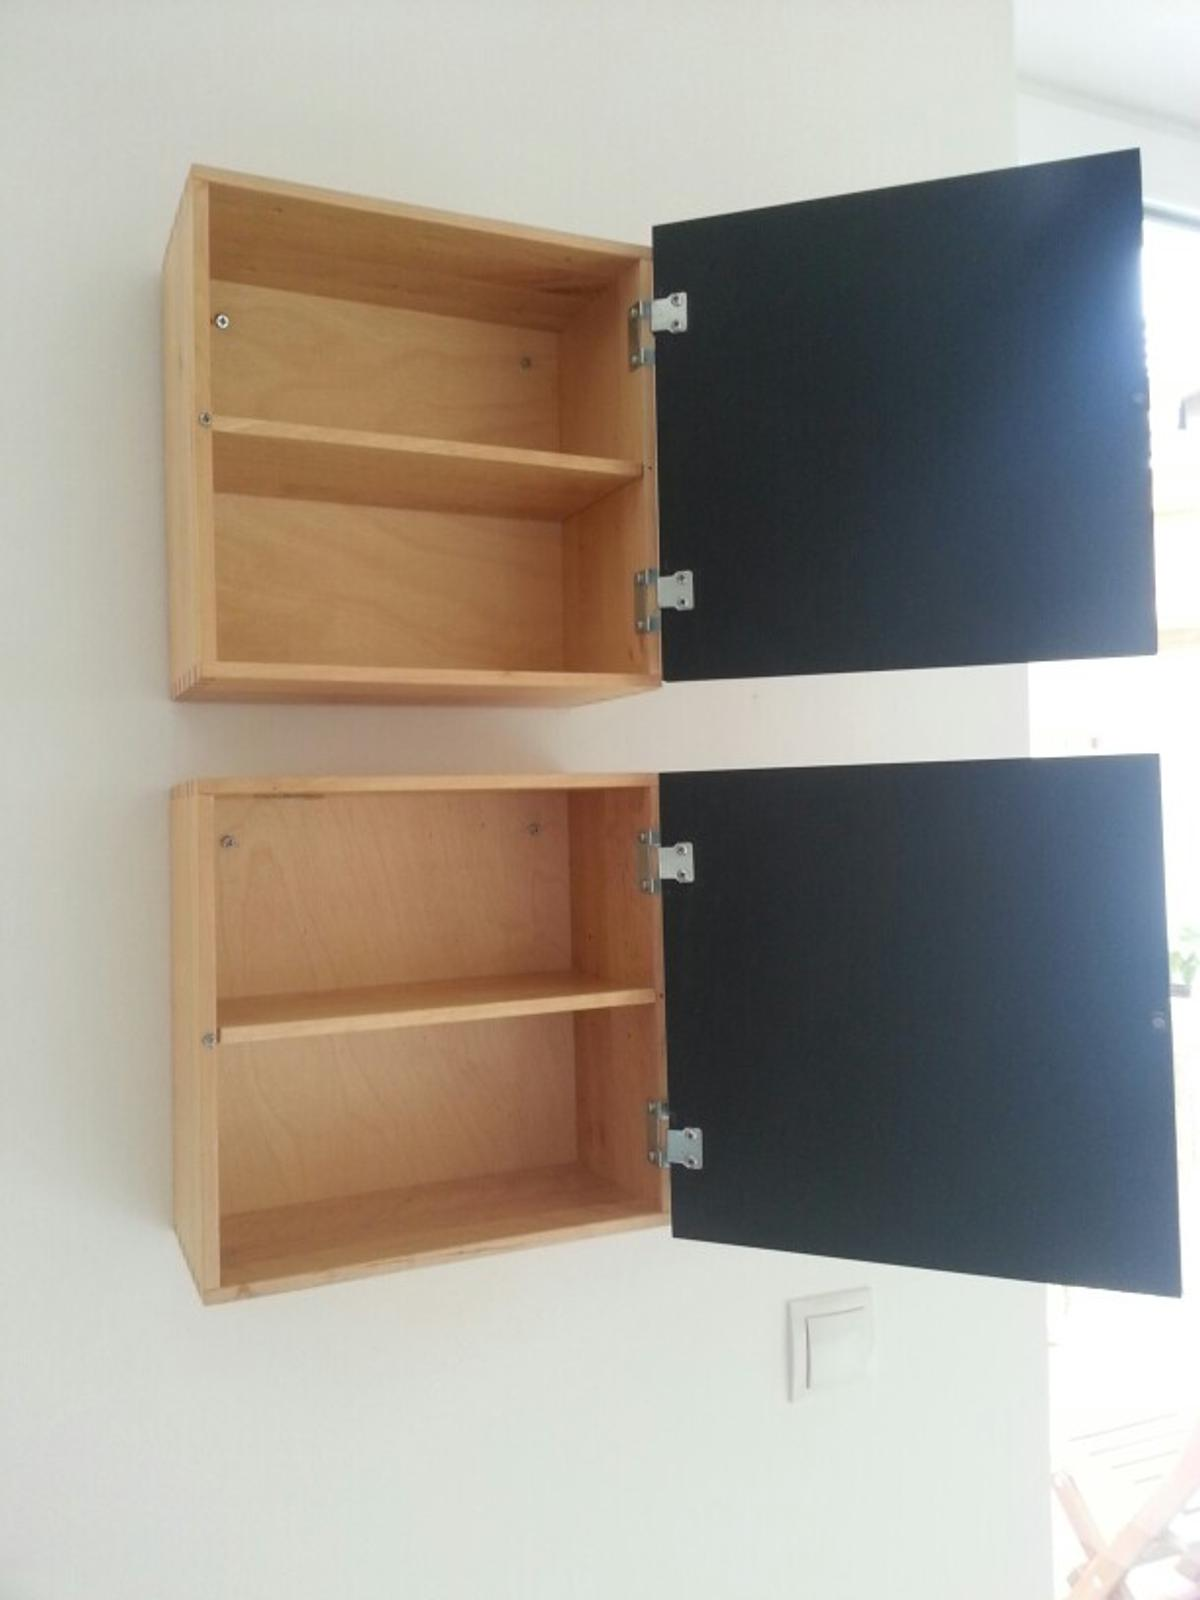 Tafel Schrank Ikea In 90762 Furth For 30 00 For Sale Shpock